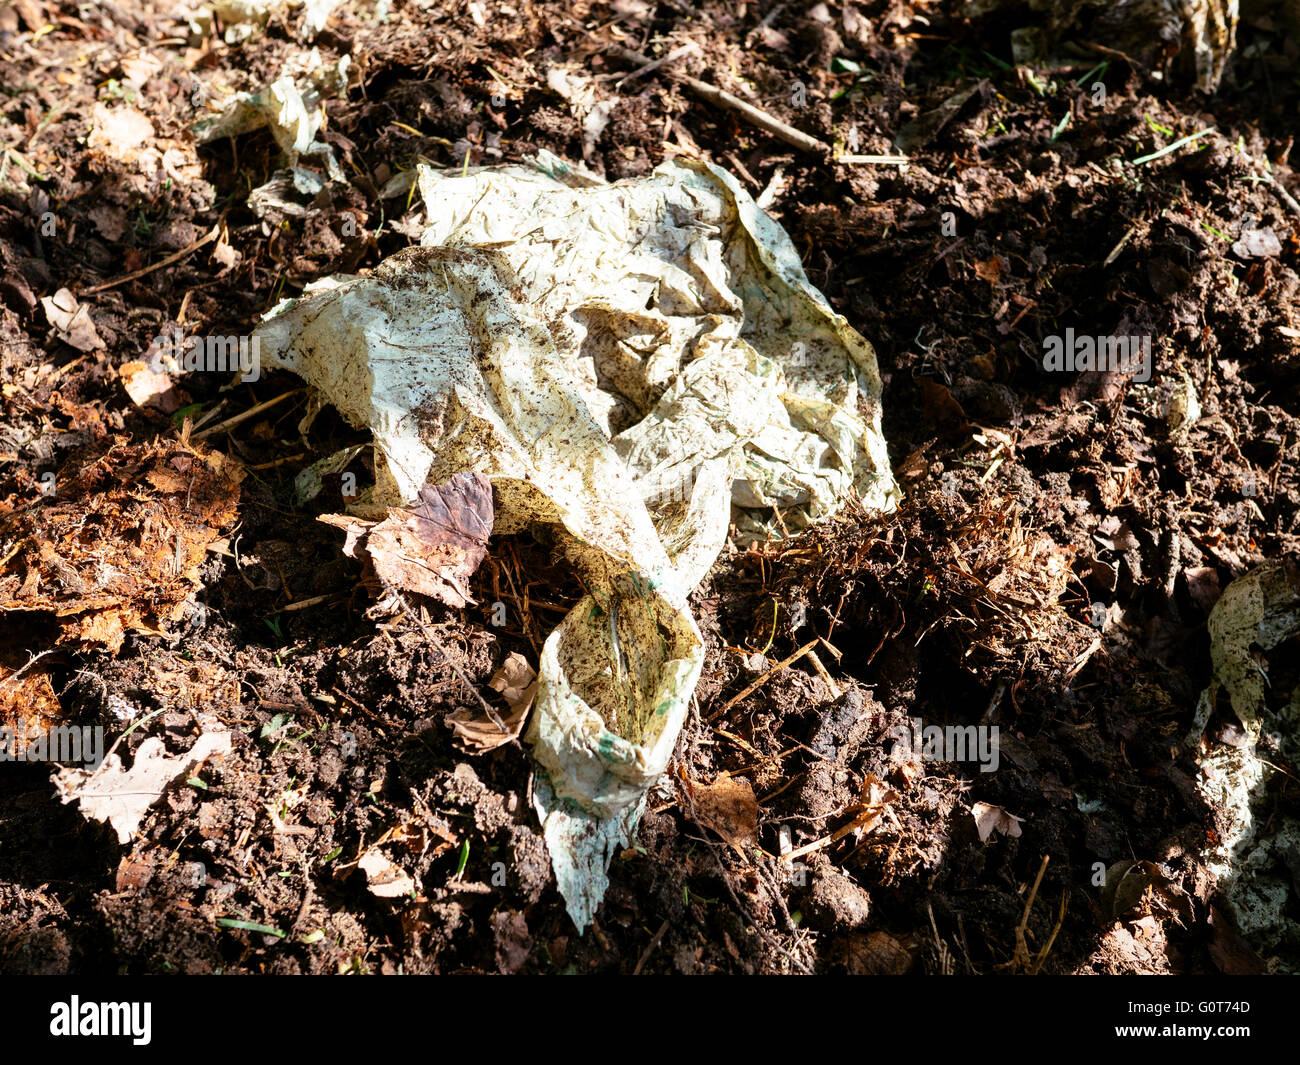 Compostable bag in a compost after a year. Stock Photo